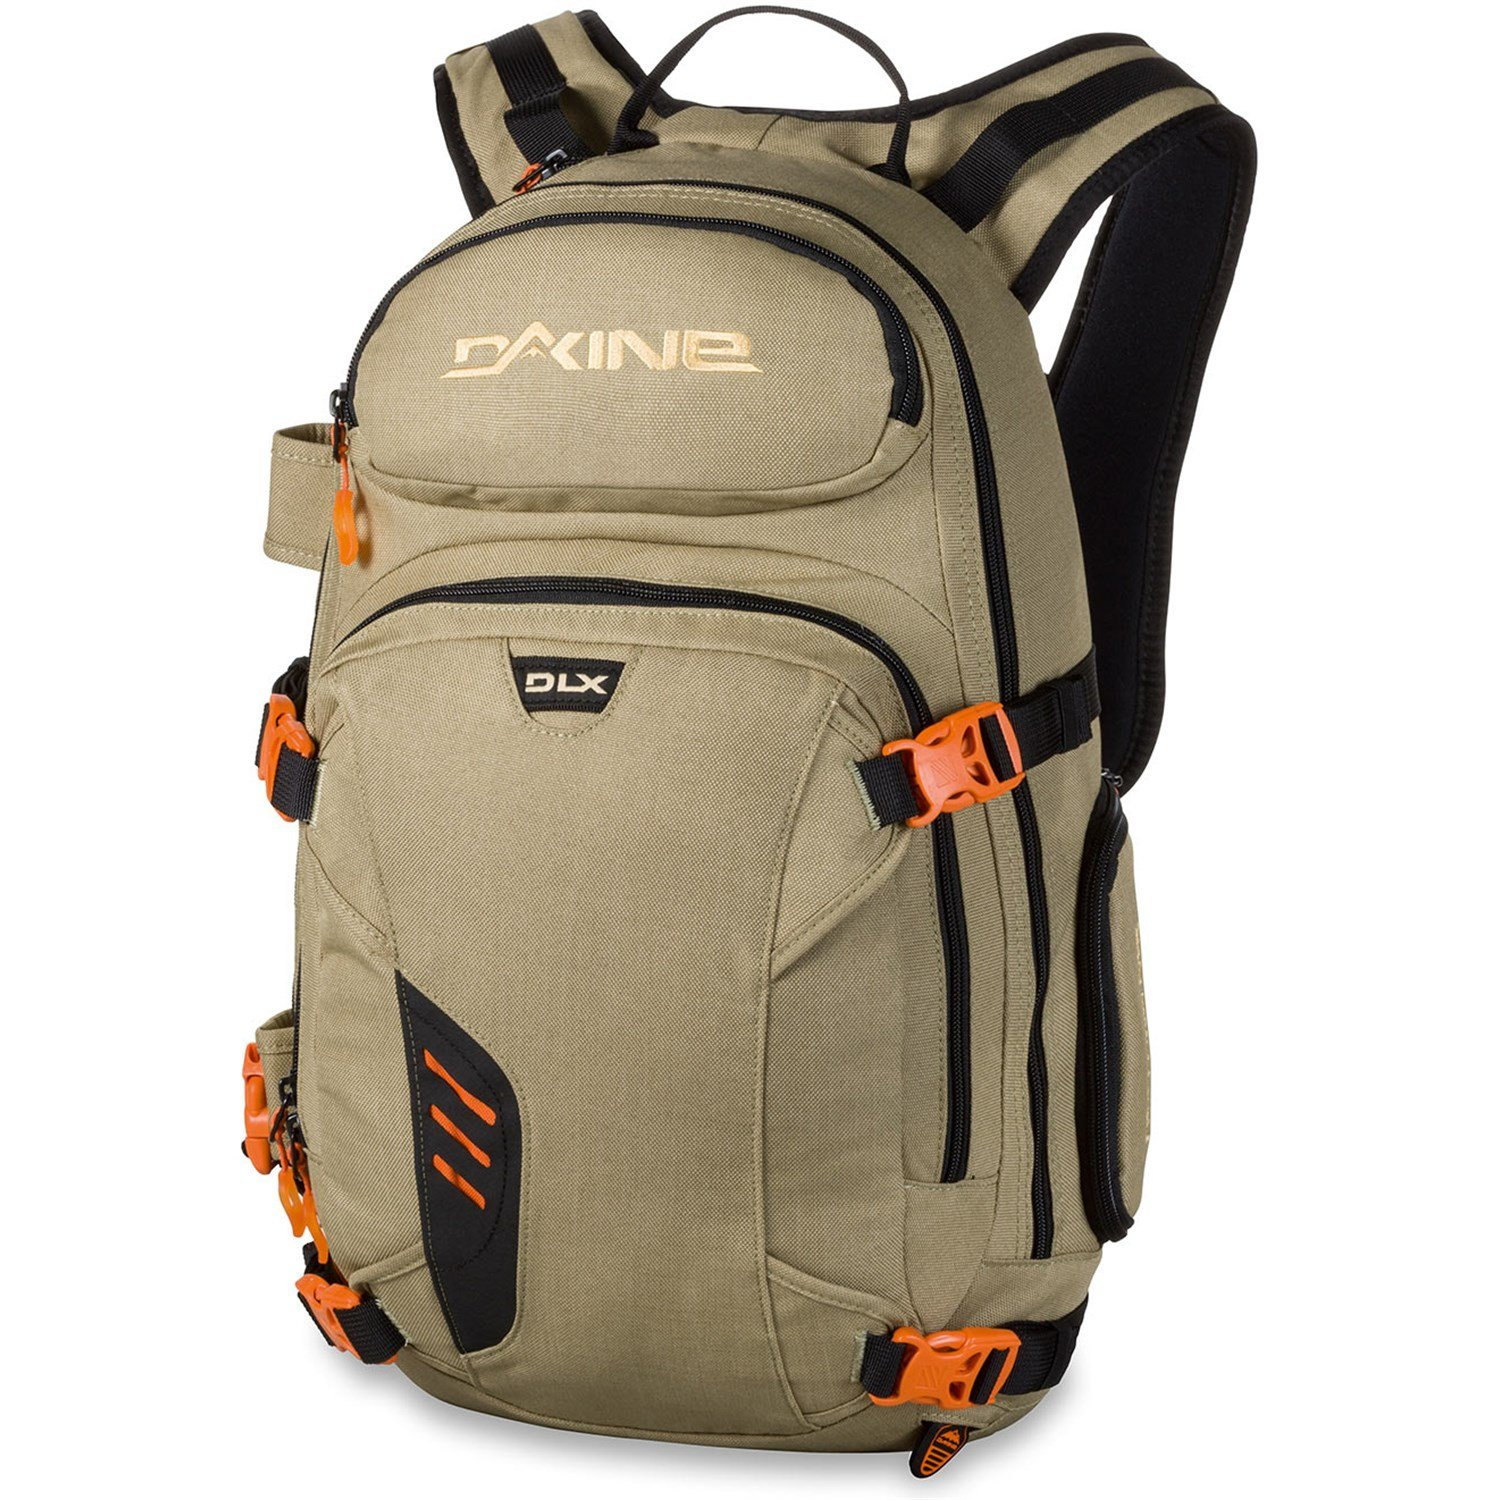 dakine heli 11l backpack with Dakine Heli Pro Dlx Backpack 20l on Best Image Dakine Snowboard Backpacks as well Heli pack 11l pacific 47332 likewise 1979 Dakine Ladies Backpack together with Dakine backpacks   dakine womens heli pack 11l snow pack   taos 198221 in addition Dakine backpacks   dakine heli pro dlx 2 snow pack   taiga 198209.